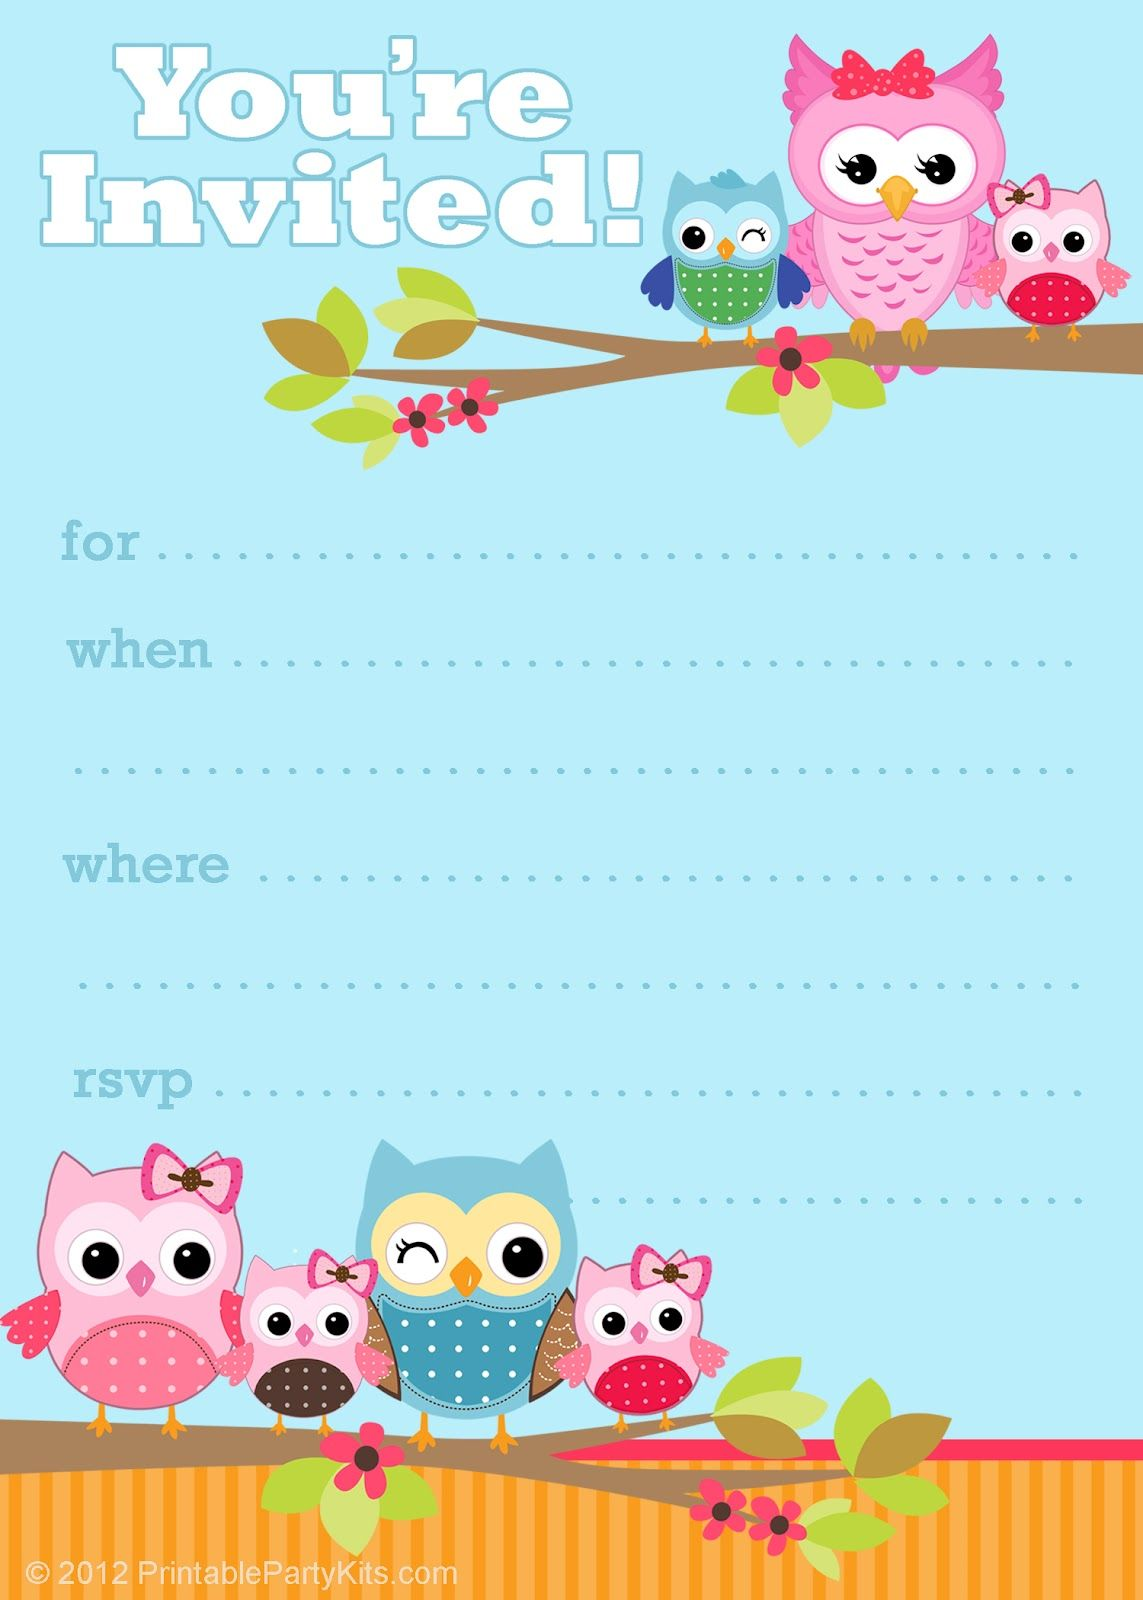 41 Printable Birthday Party Cards Invitations For Kids To Make Big Diy Ideas Owl Baby Shower Invitations Owl Birthday Invitations Owl Party Invitations